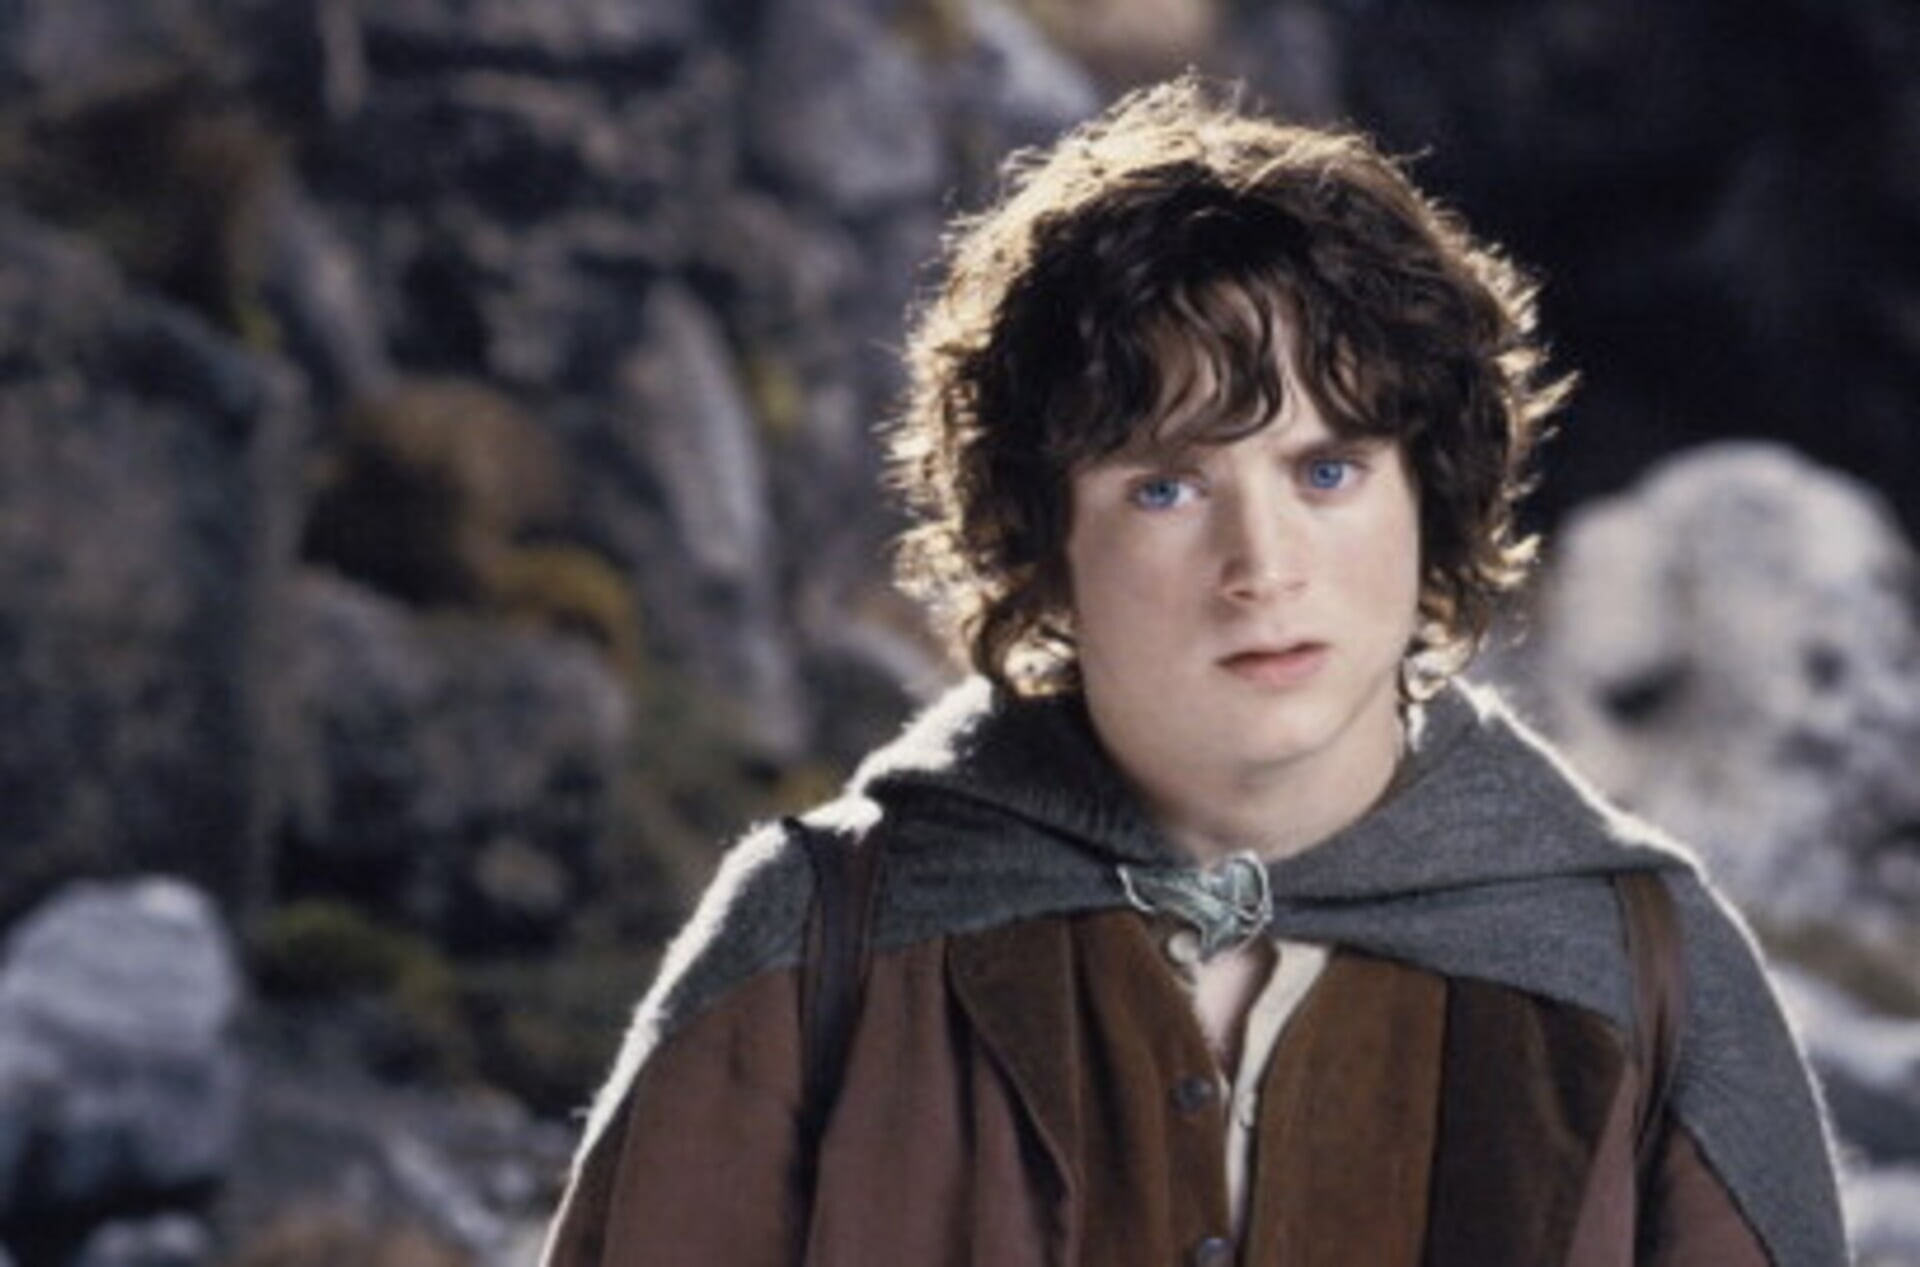 The Lord of the Rings: The Two Towers - Image 6